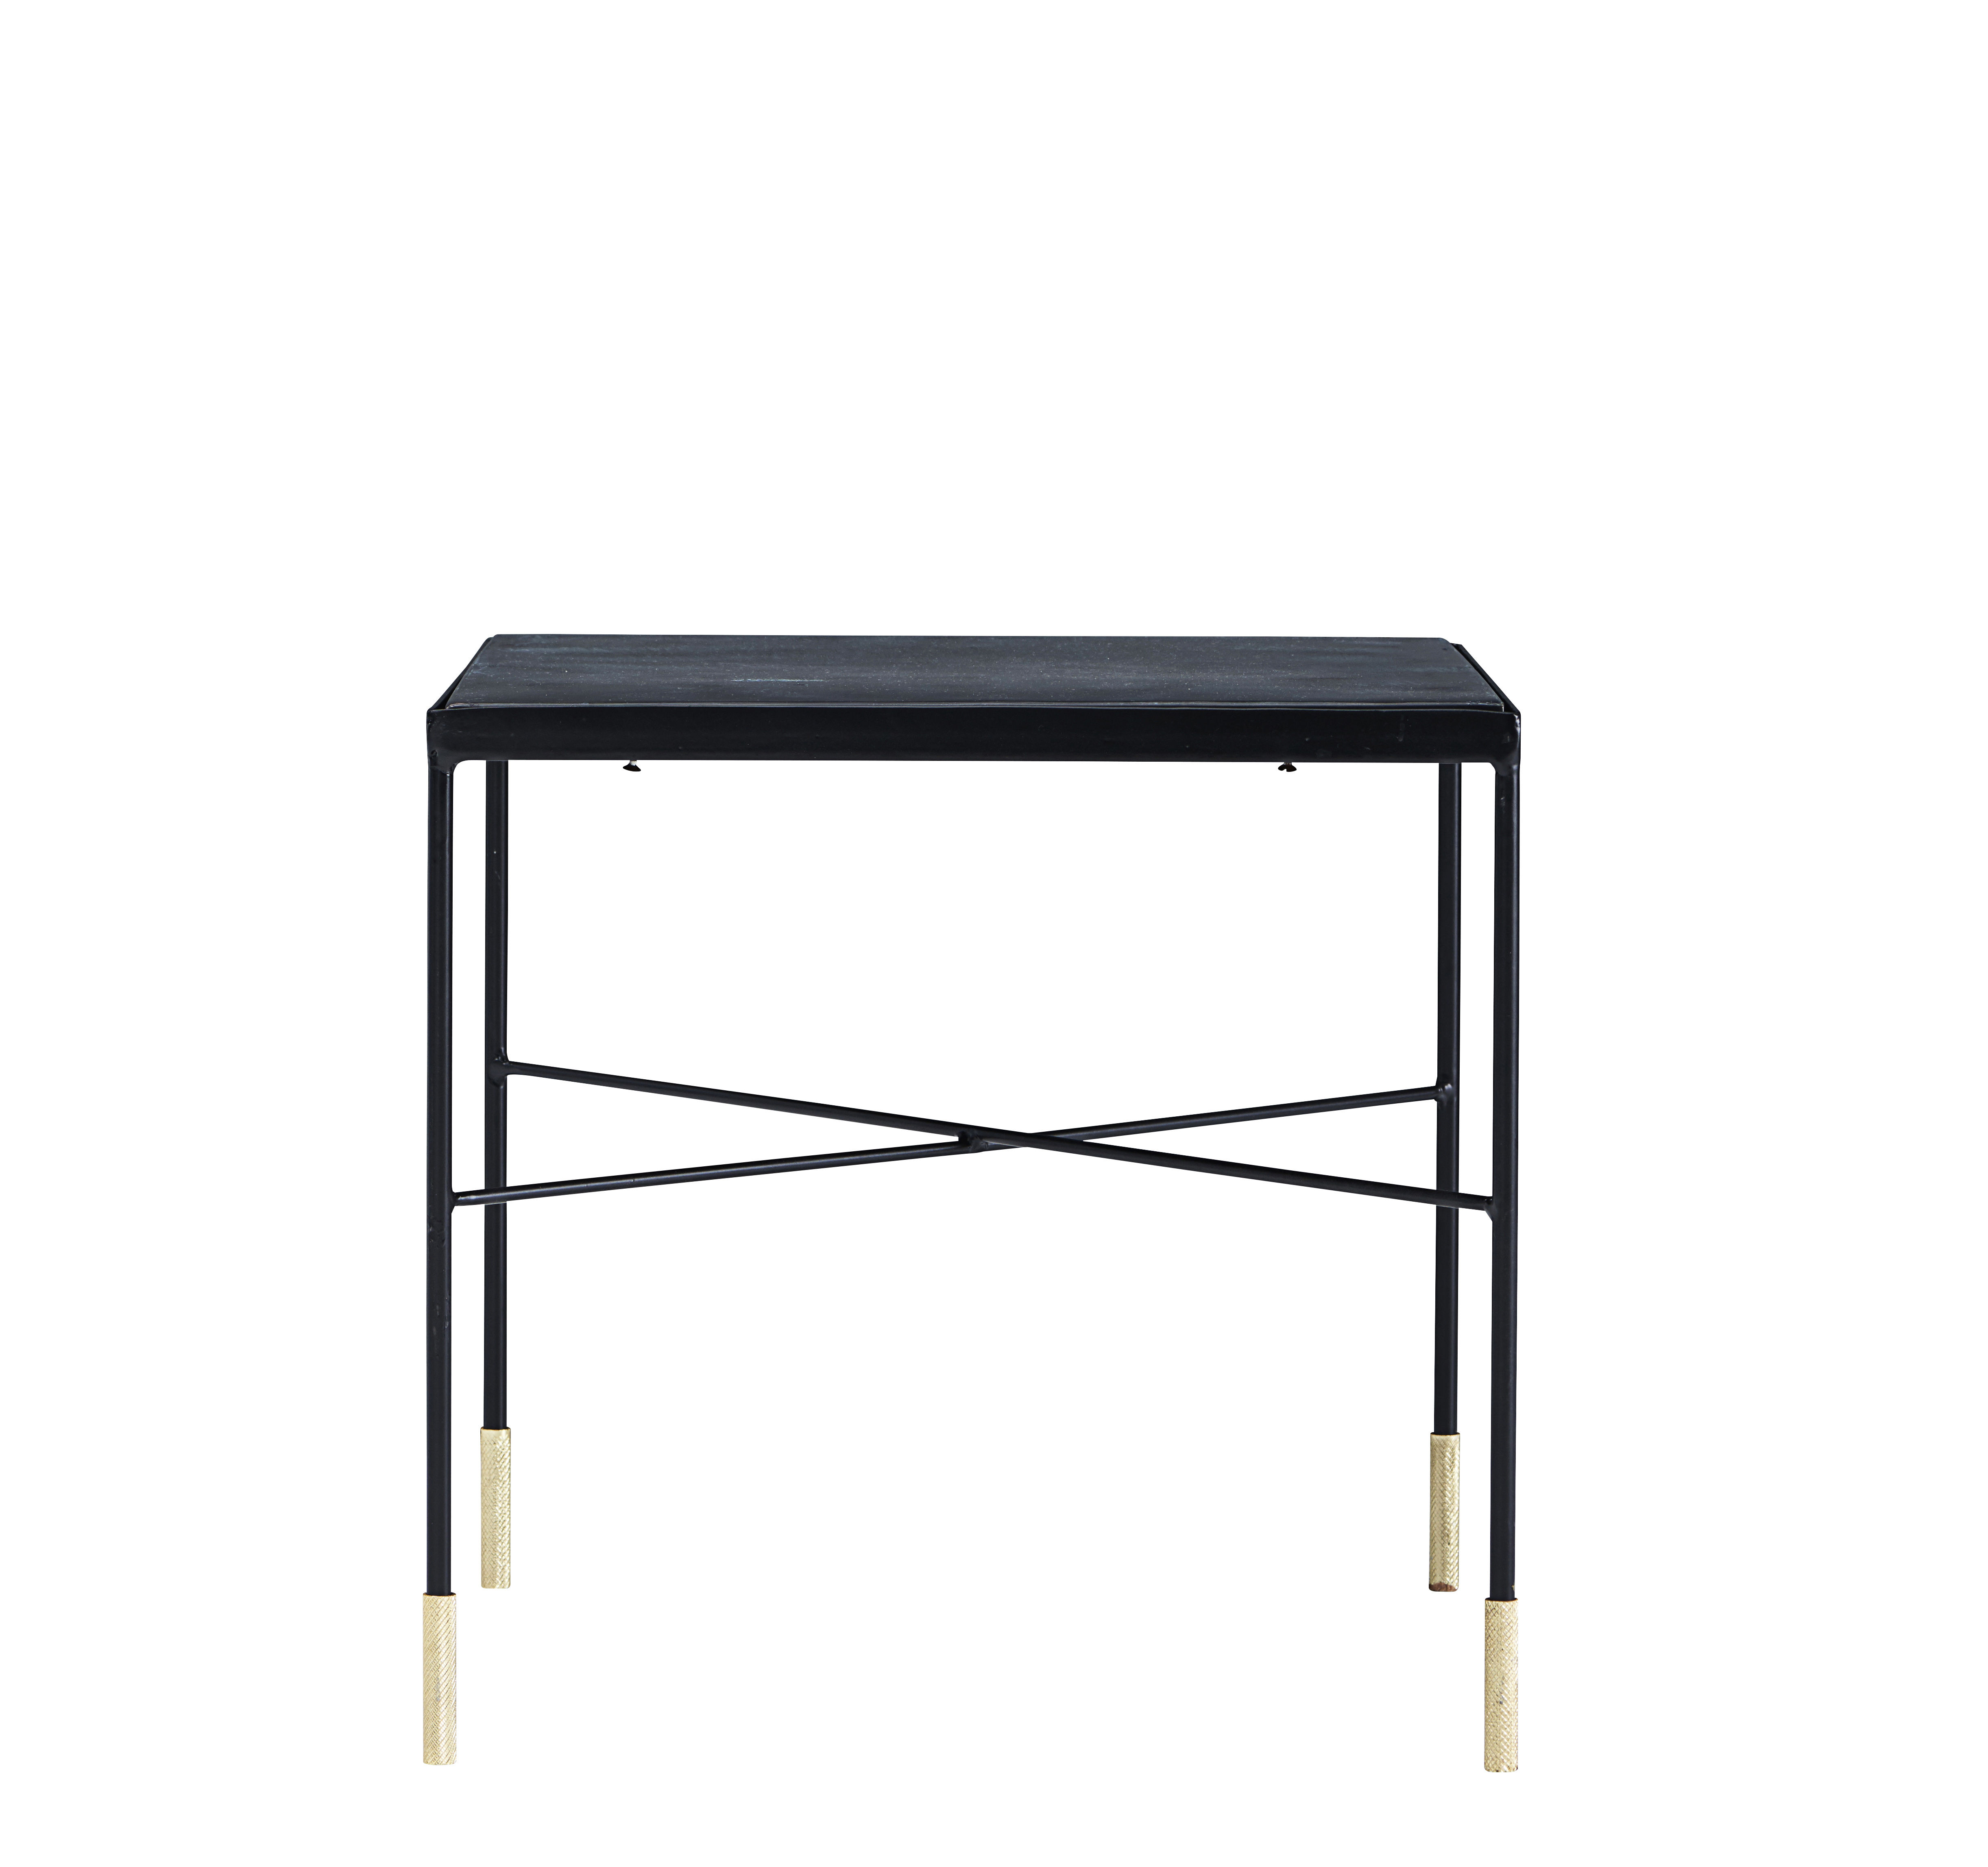 ox couchtisch 40 x 40 x h 40 cm schwarz oxidiert messing by house doctor made in design. Black Bedroom Furniture Sets. Home Design Ideas